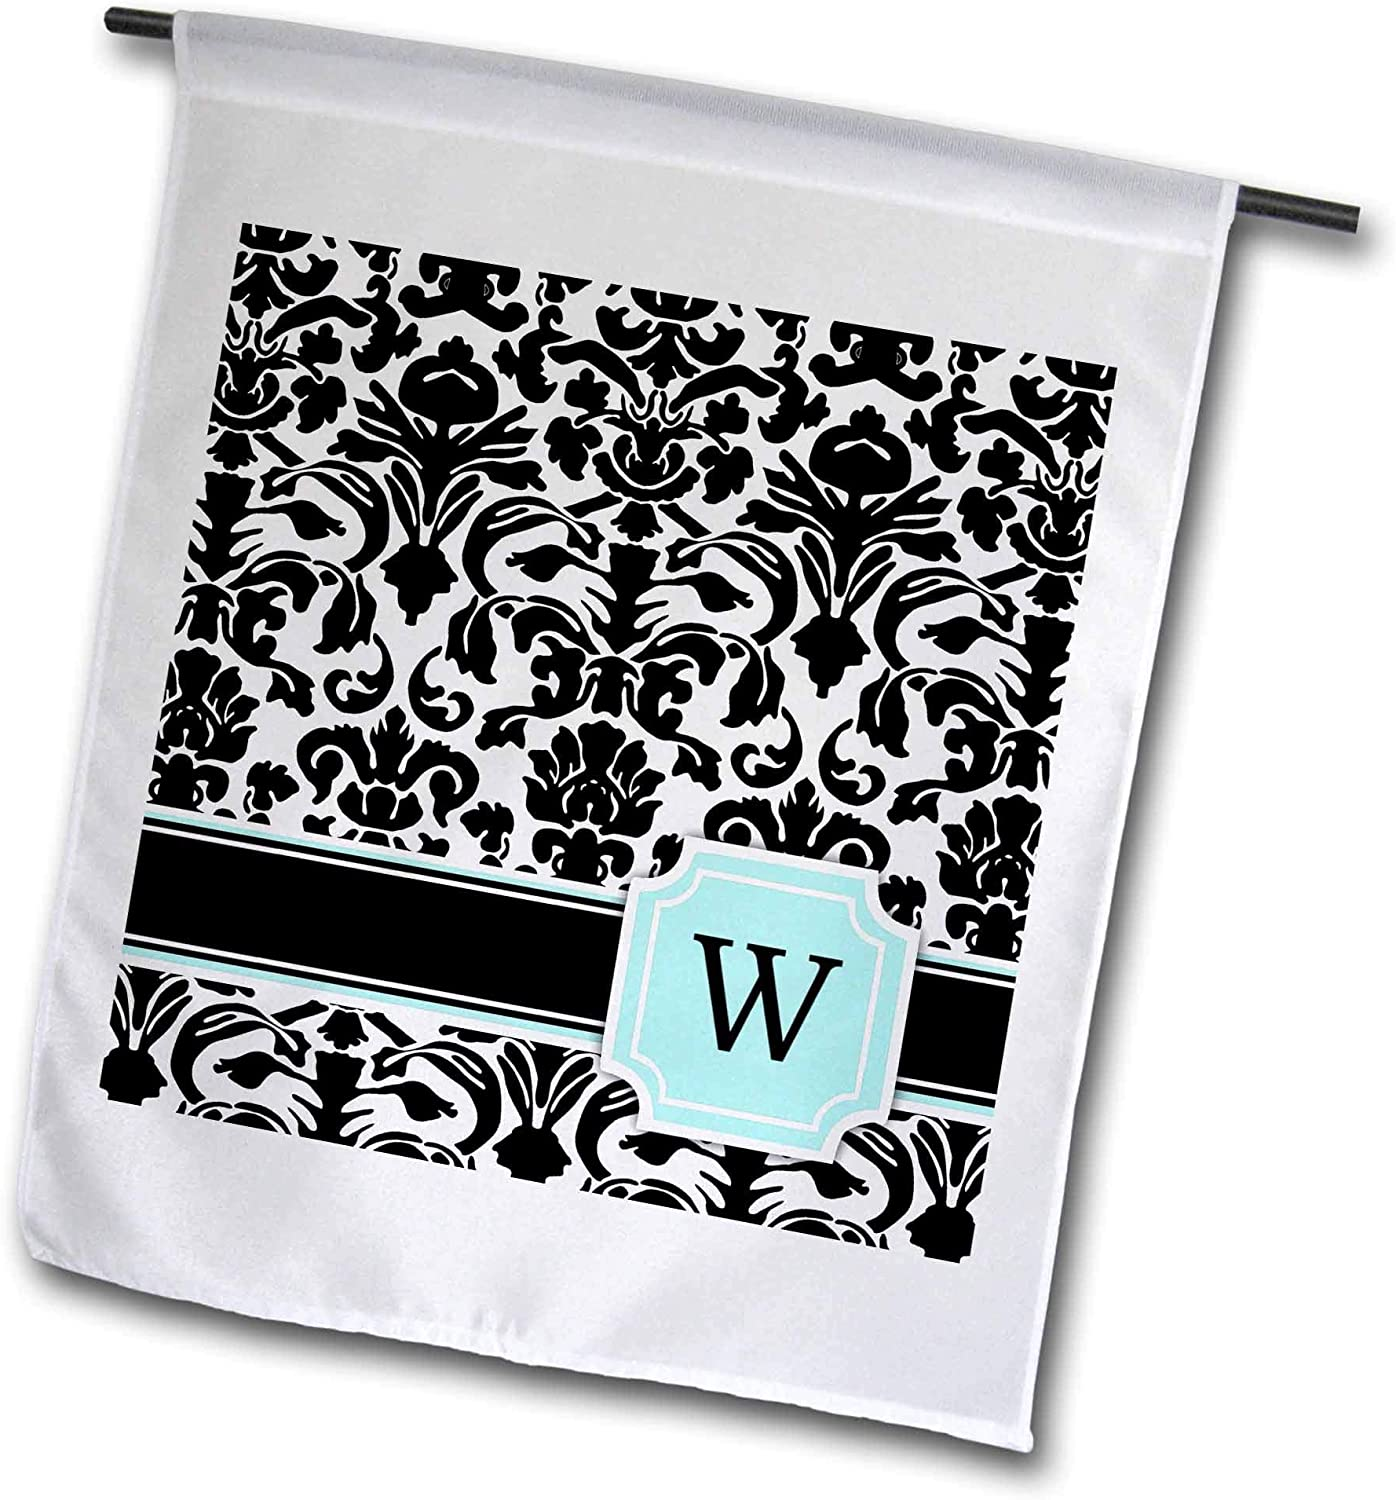 3dRose InspirationzStore Monograms - Letter W Personal Monogrammed Mint Blue Black and White Damask Pattern - Classy Personalized Initial - 12 x 18 inch Garden Flag (fl_154372_1)